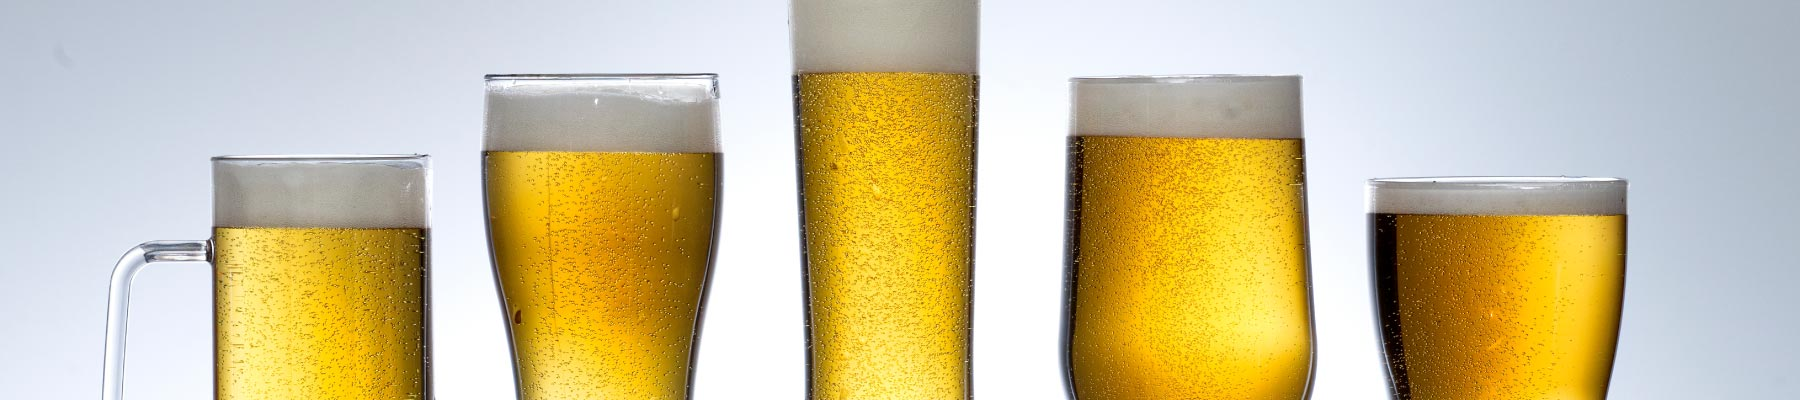 beer-glasses-hampshire